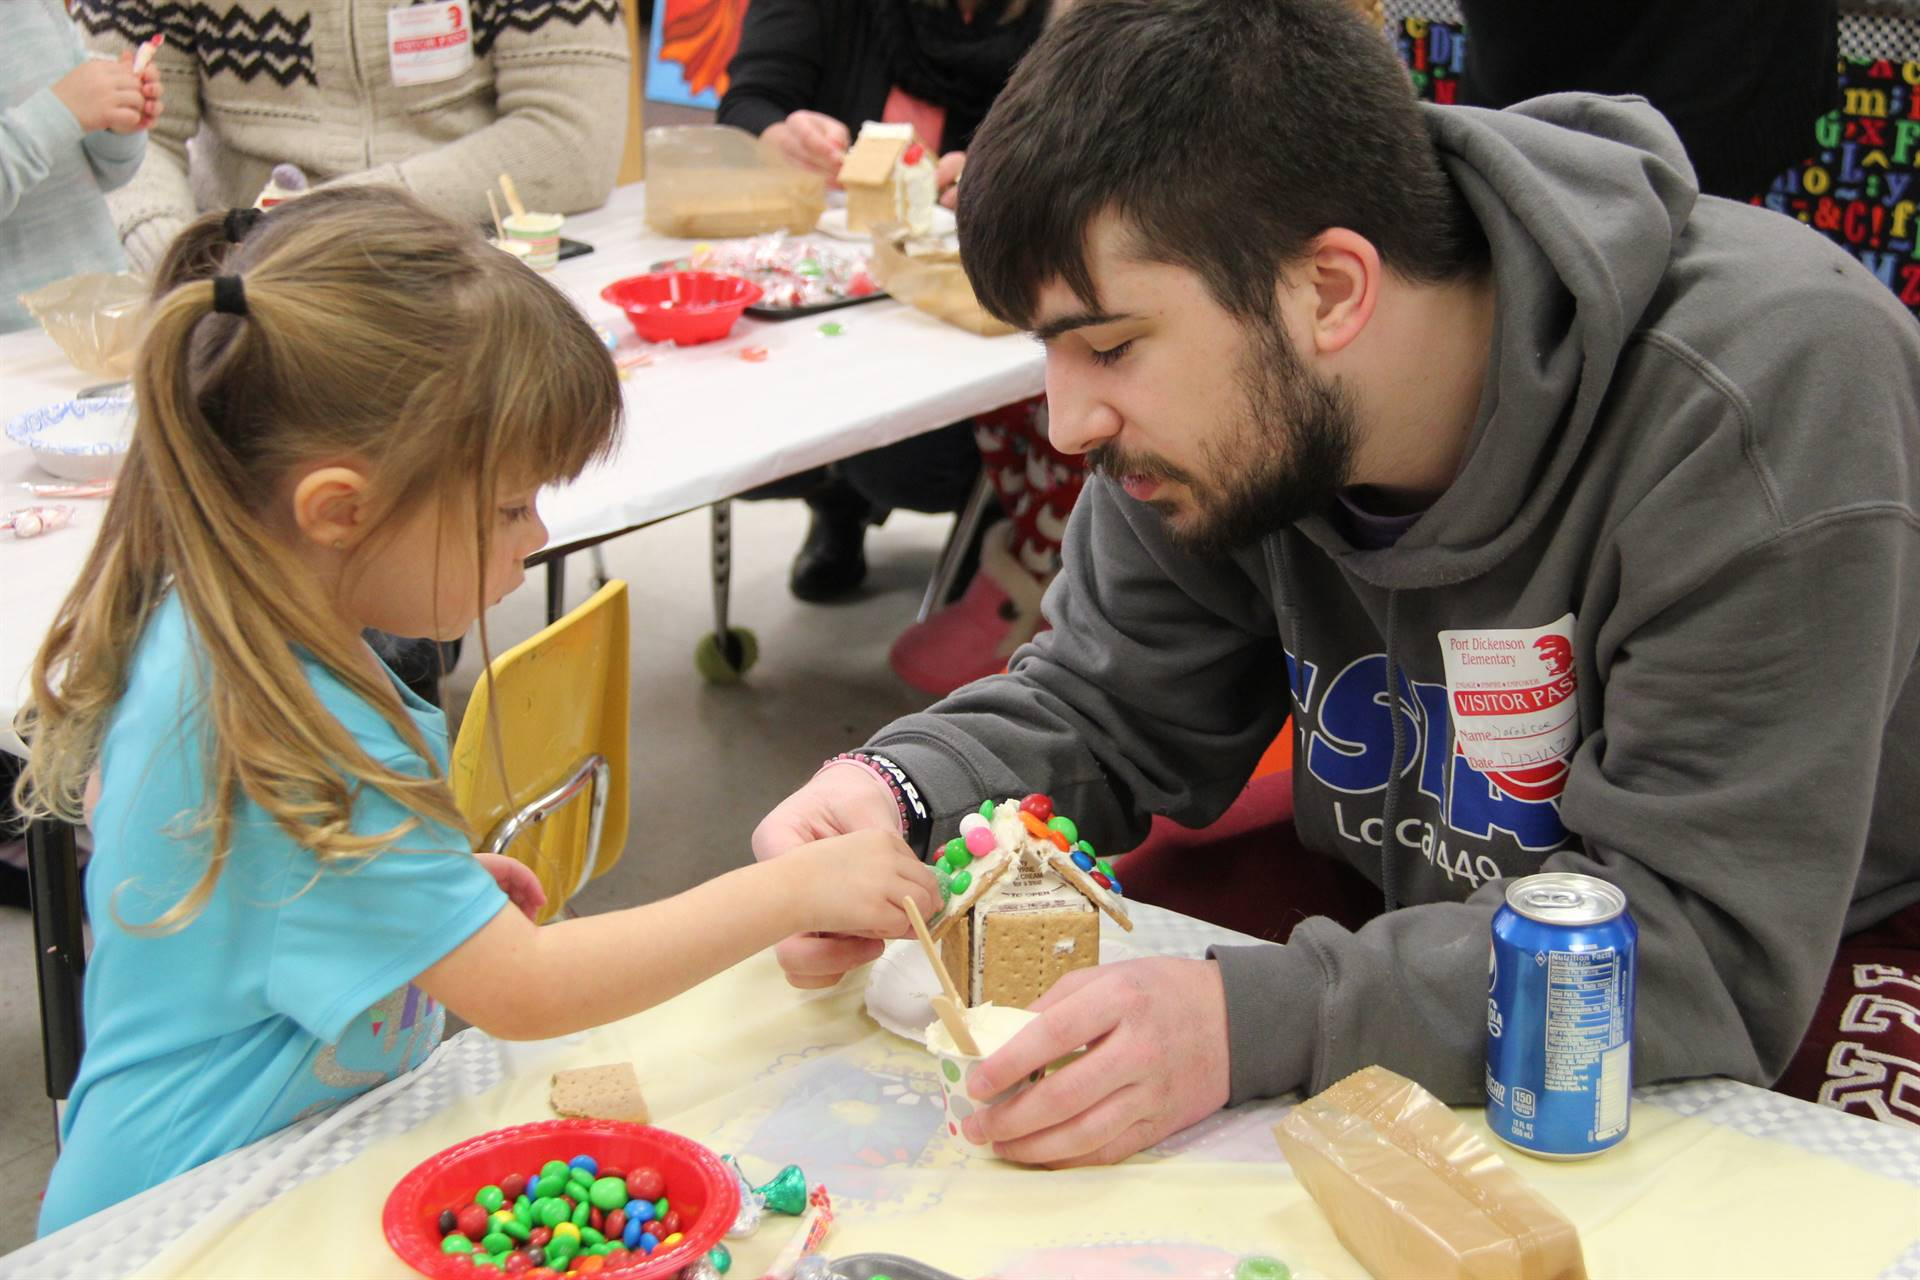 man helping girl decorate gingerbread house